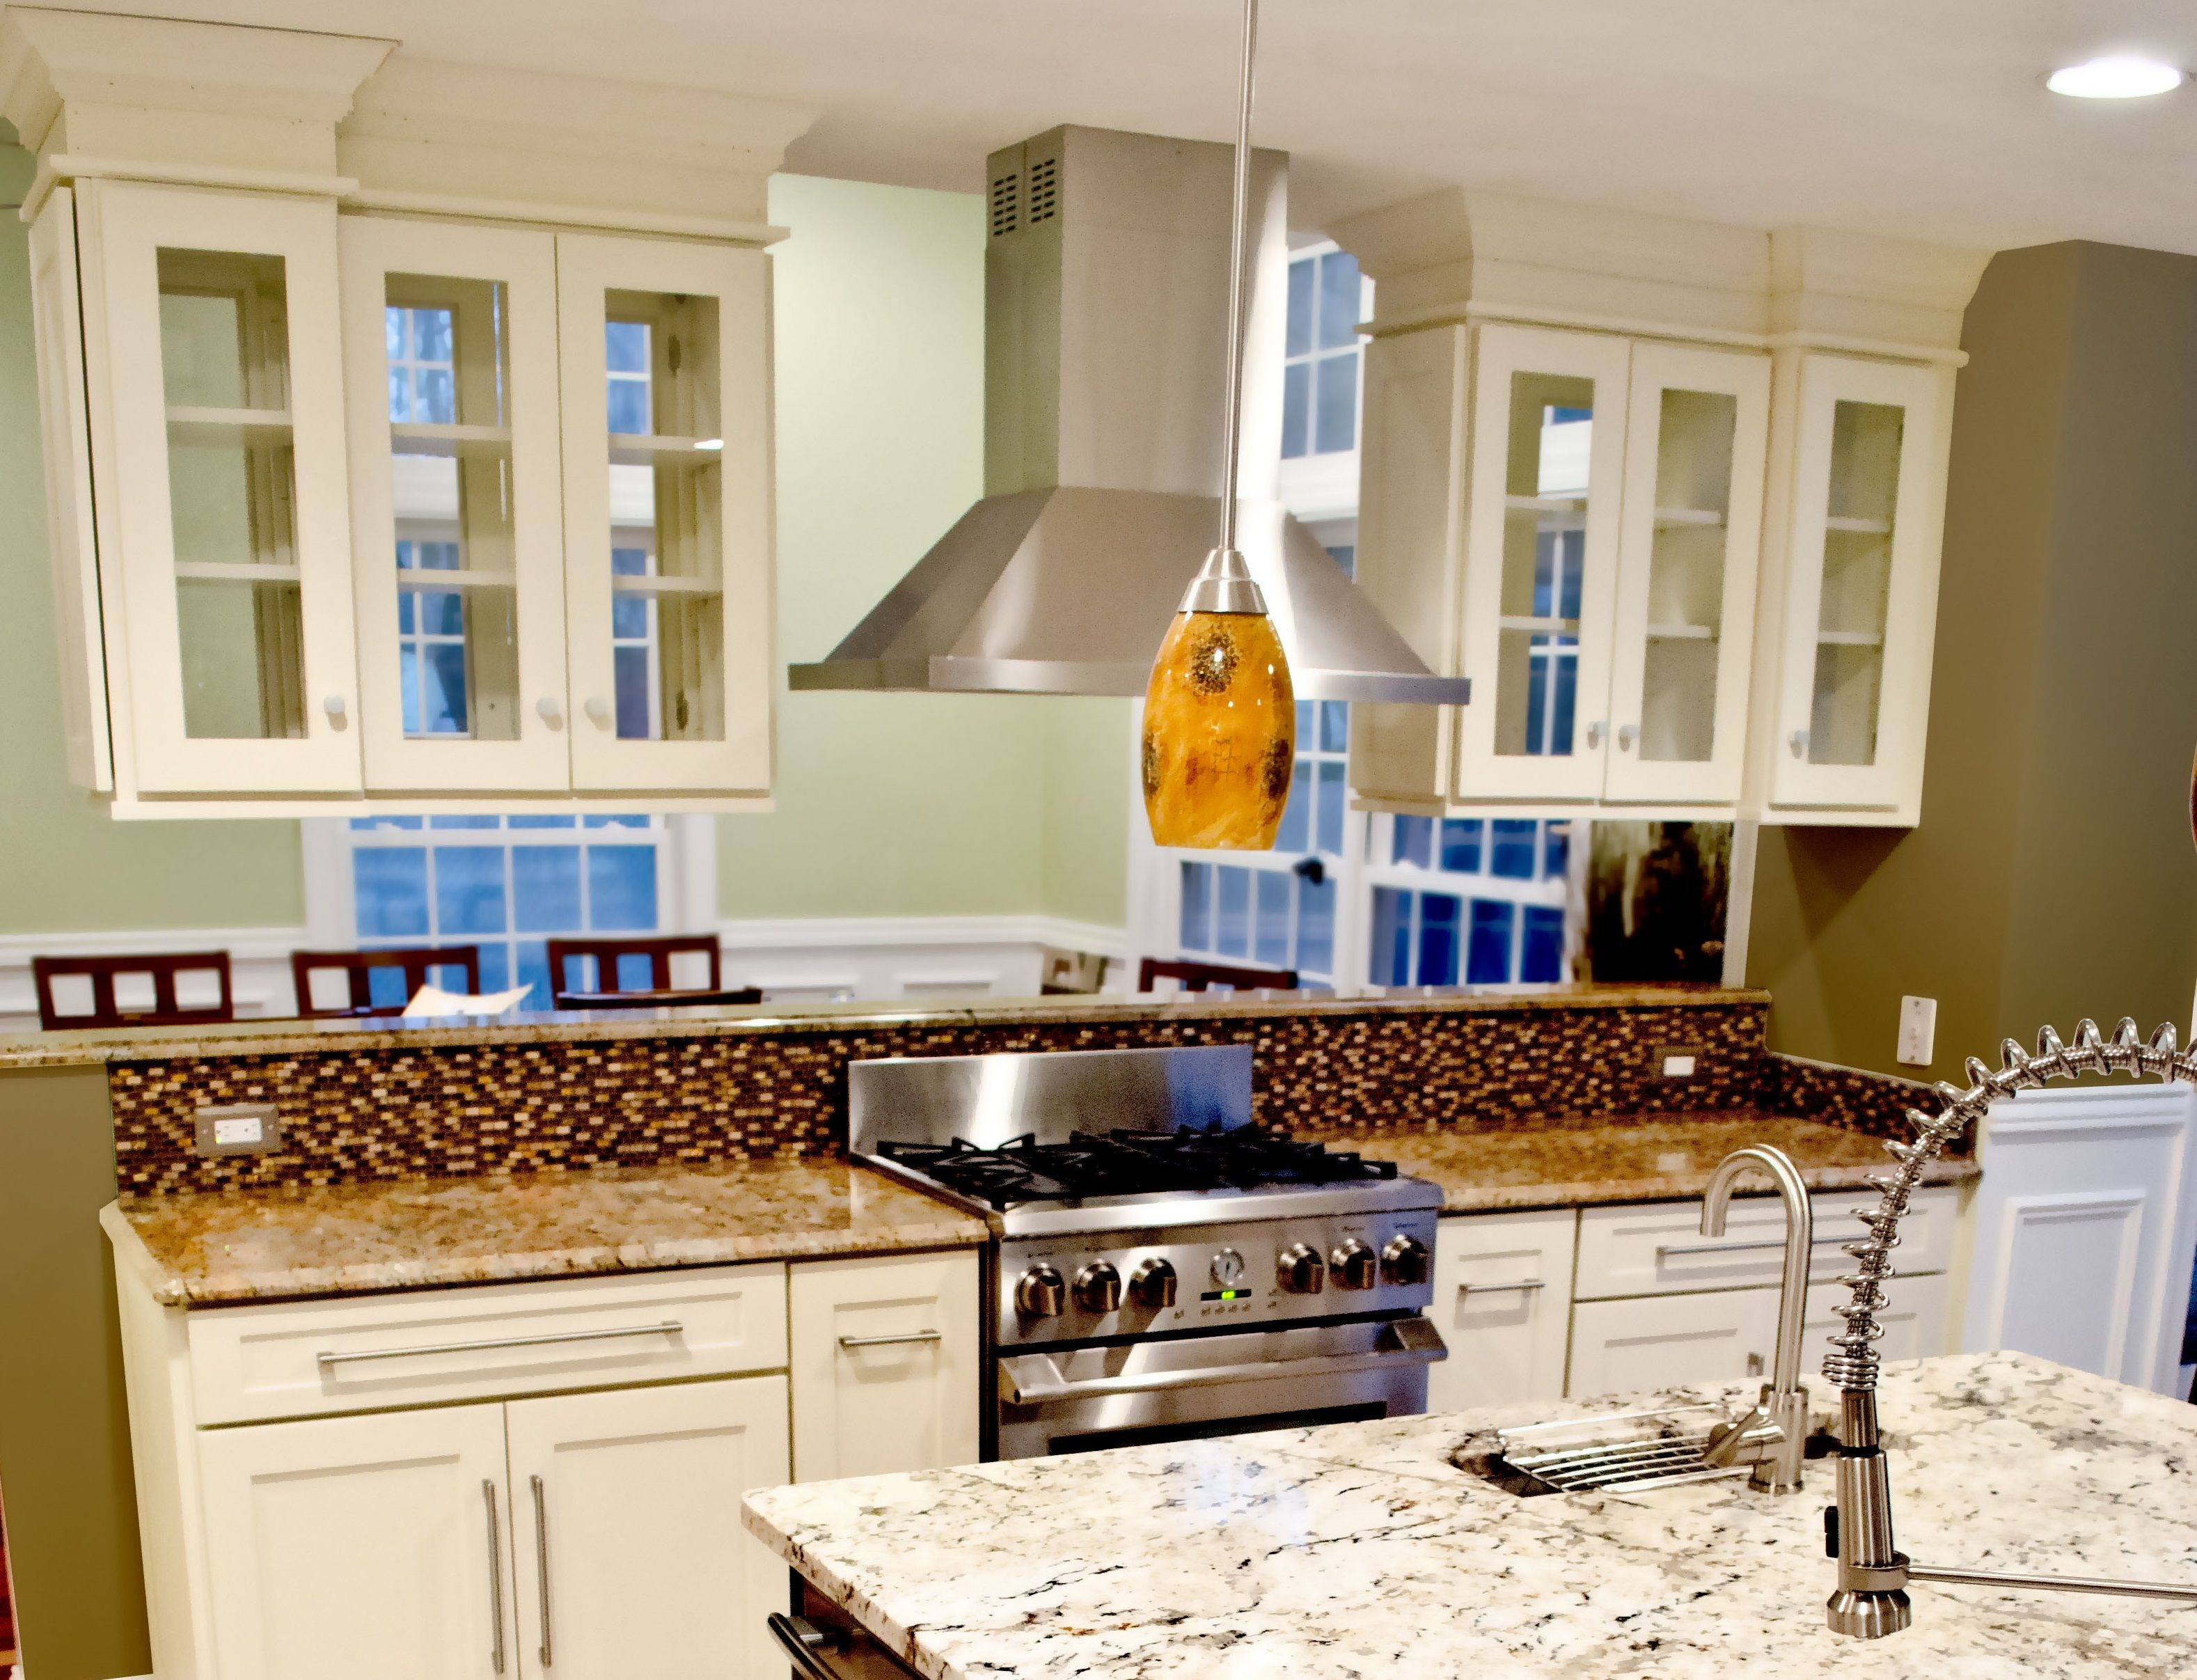 Transforming Your Design With A Kitchen Peninsula Upper Kitchen Cabinets Kitchen Peninsula Glass Kitchen Cabinet Doors